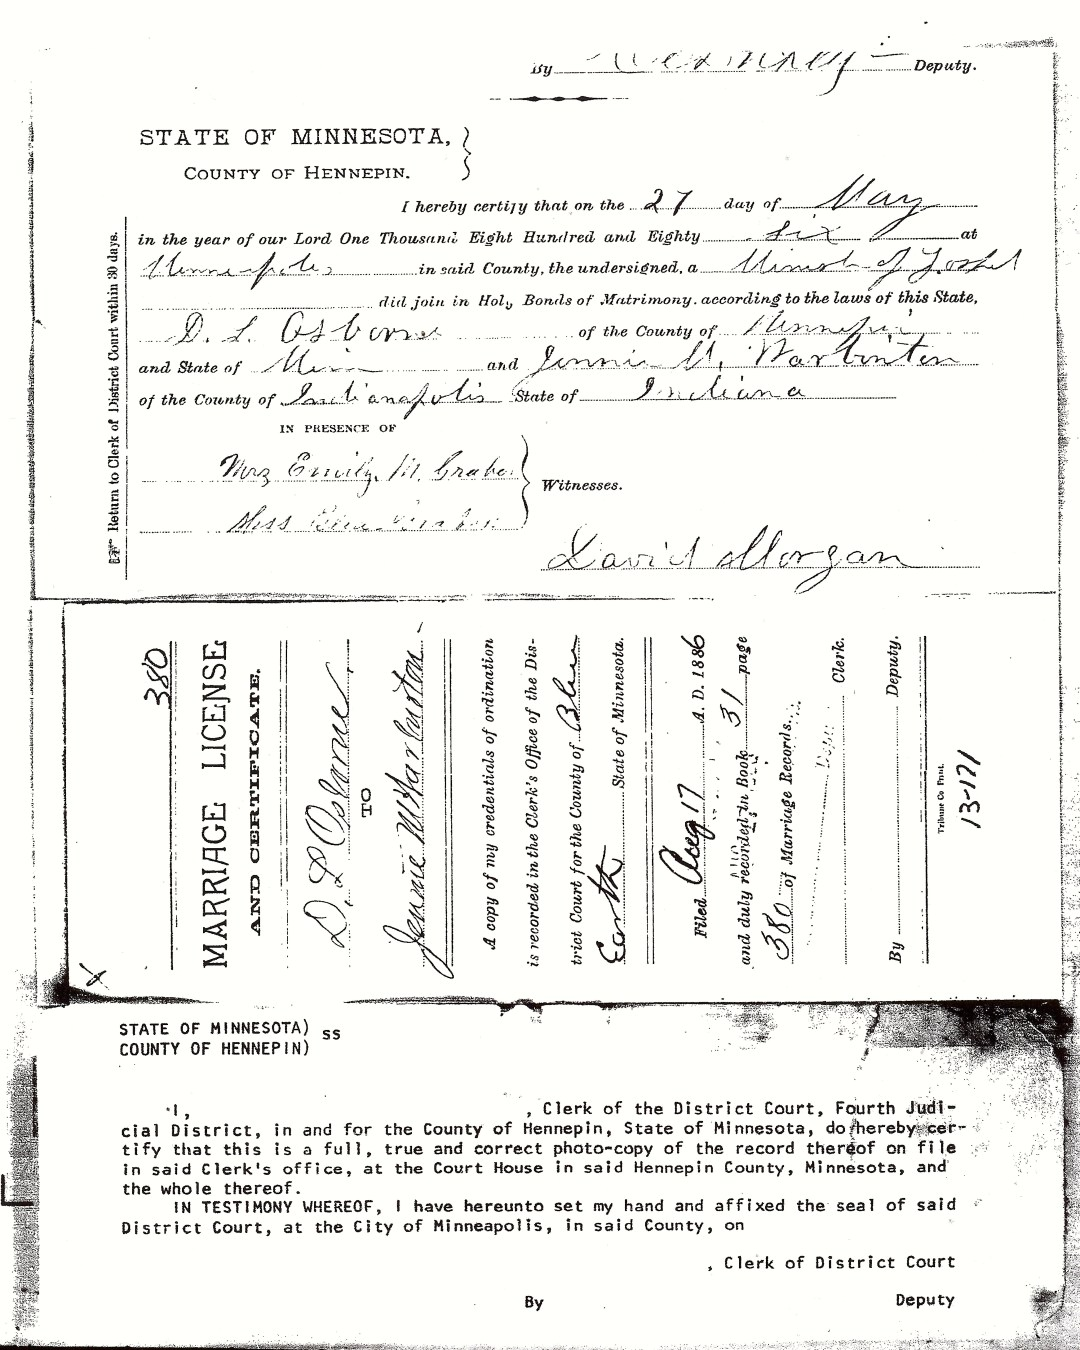 Marriage License of David and Jennie Osborne